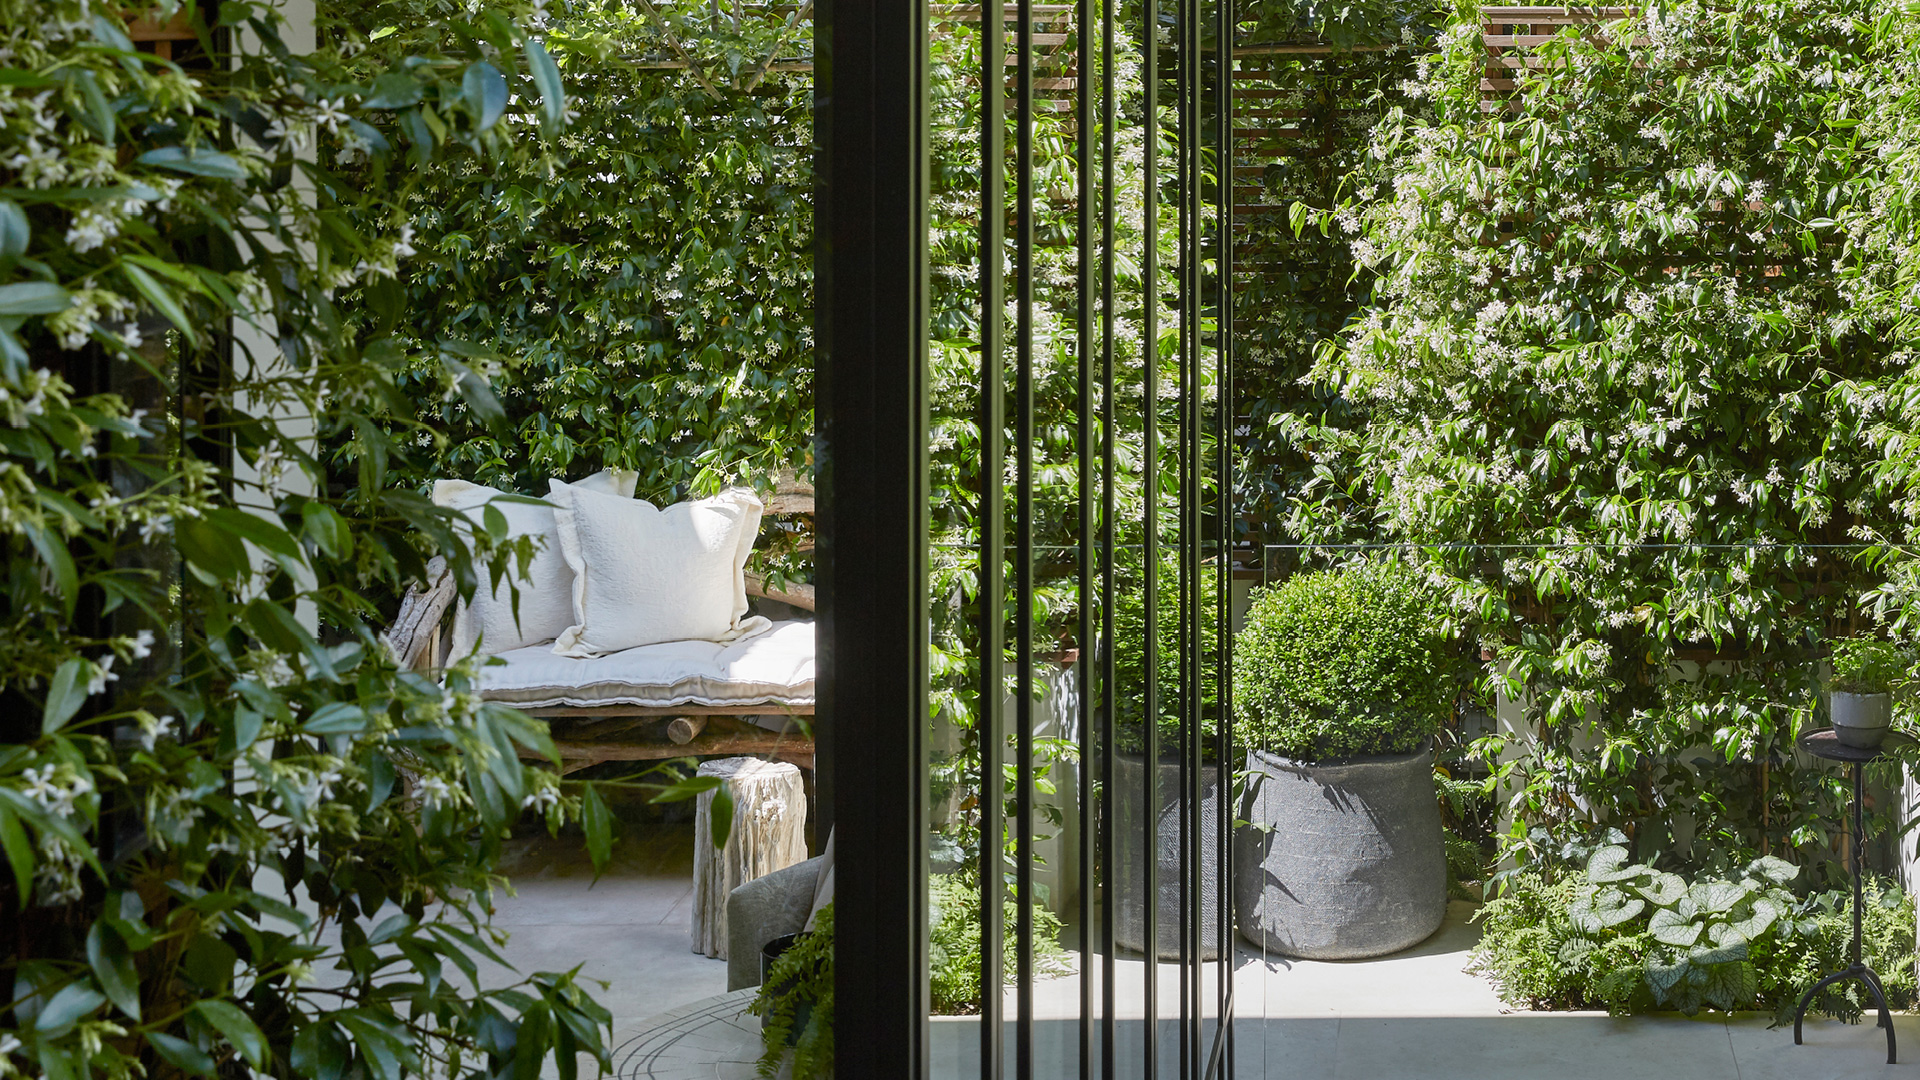 Alt Text: Designer Louise Bradley's London home is surrounded by greenery| Louise Bradley| London| STIR